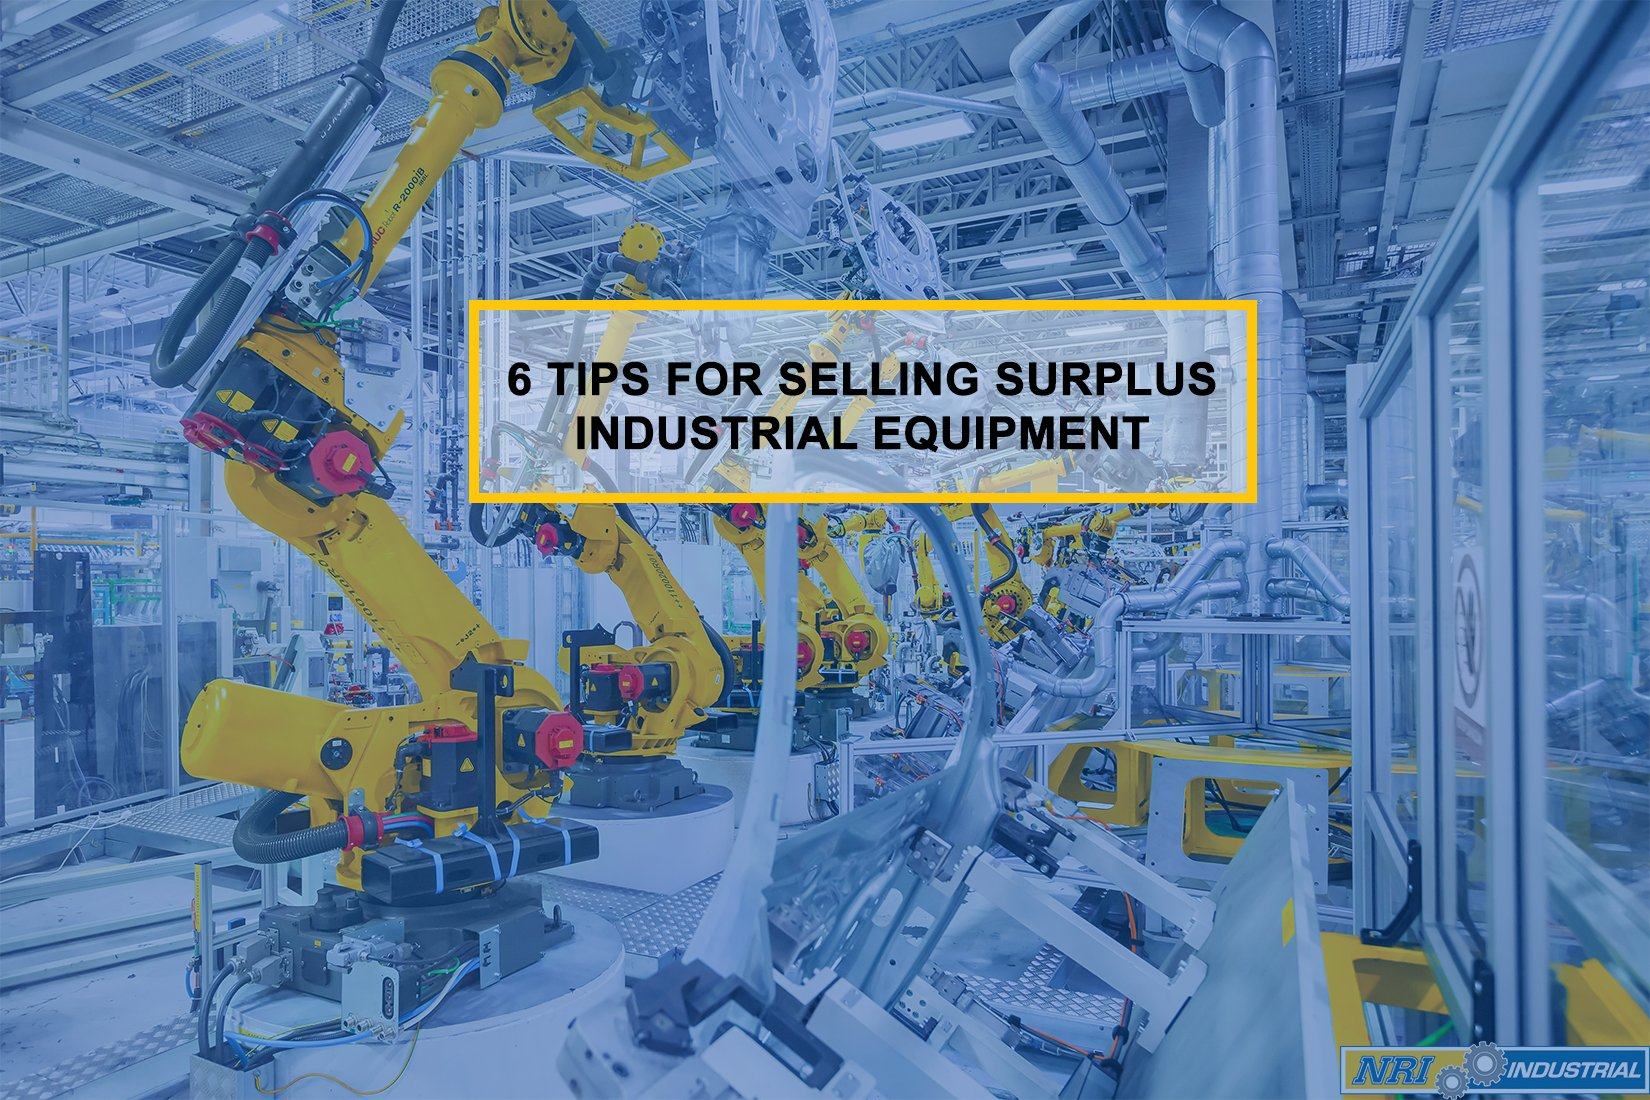 6 Tips for Selling Surplus Industrial Equipment